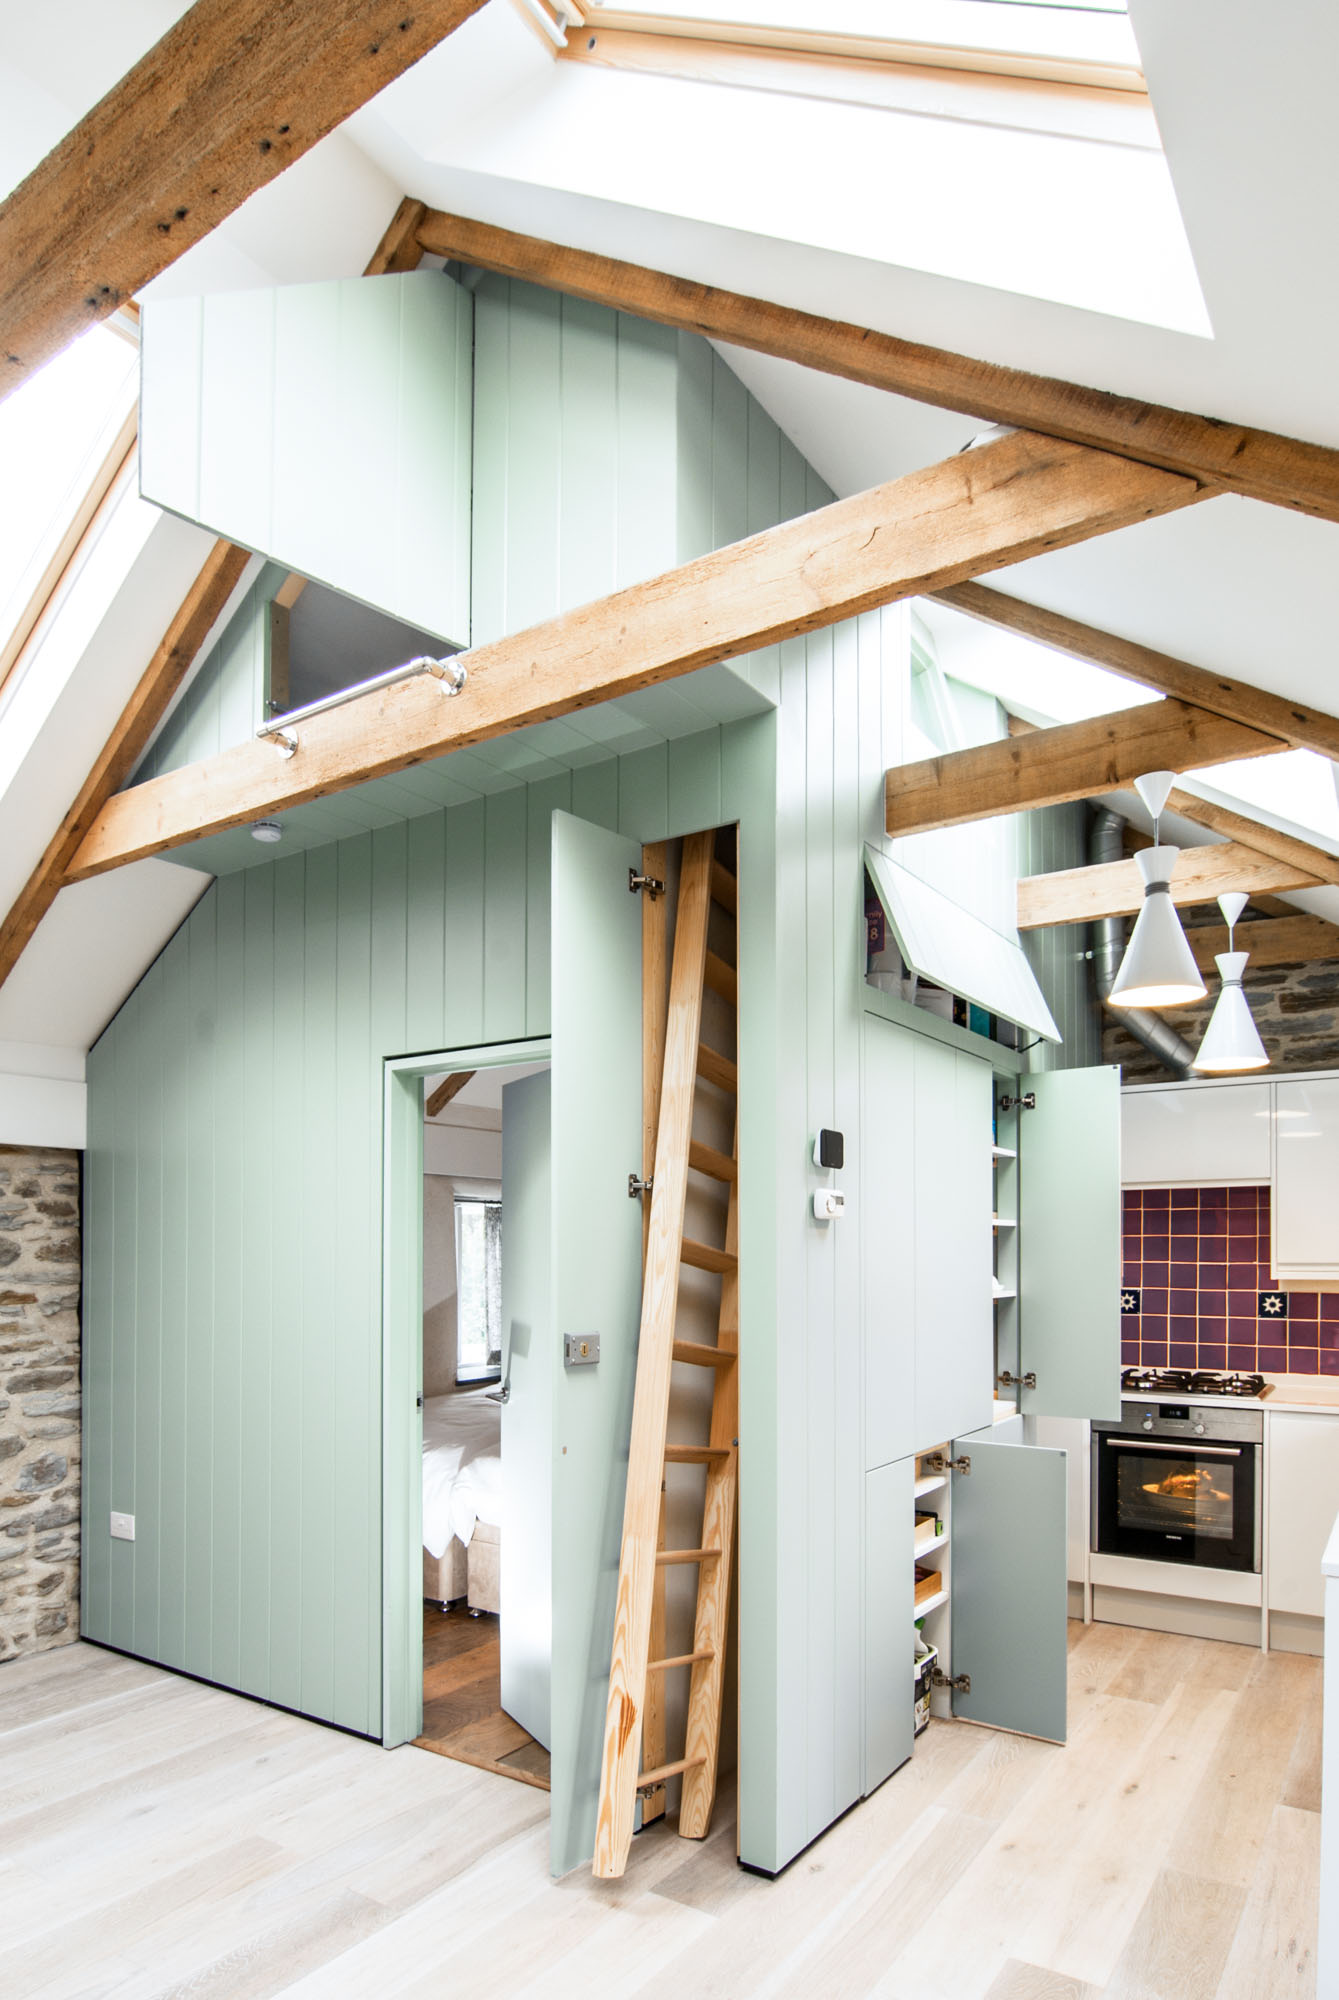 Exposed beams and hidden ladder within the concealed room structure.